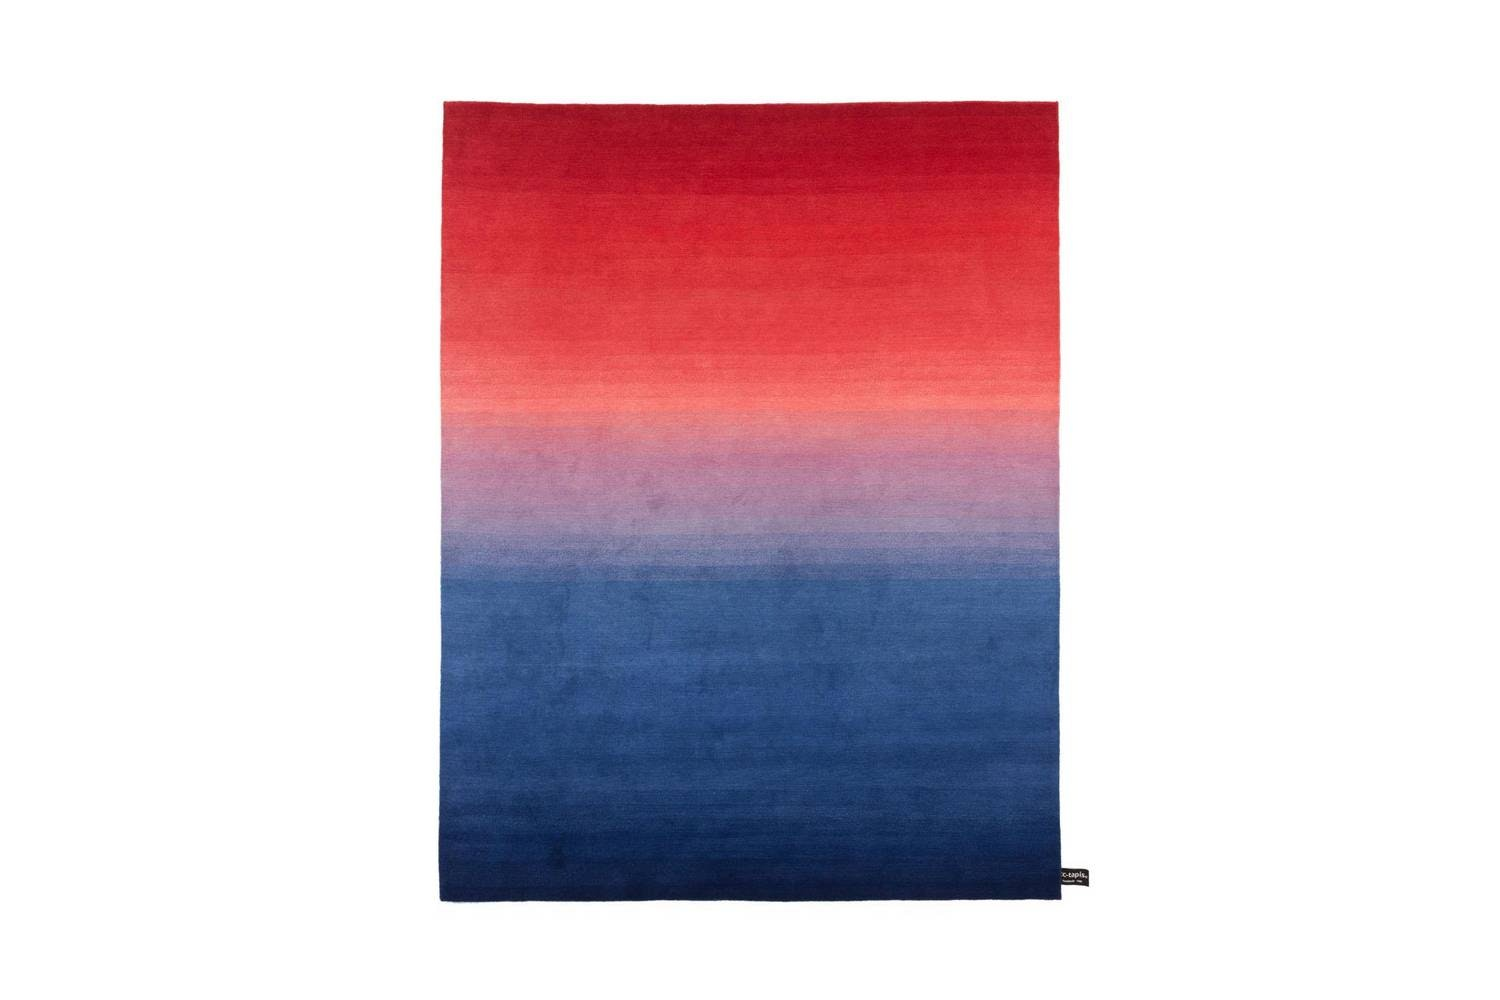 Tye 'N Dye Bicolour Rug by Architectural Collection for CC-Tapis